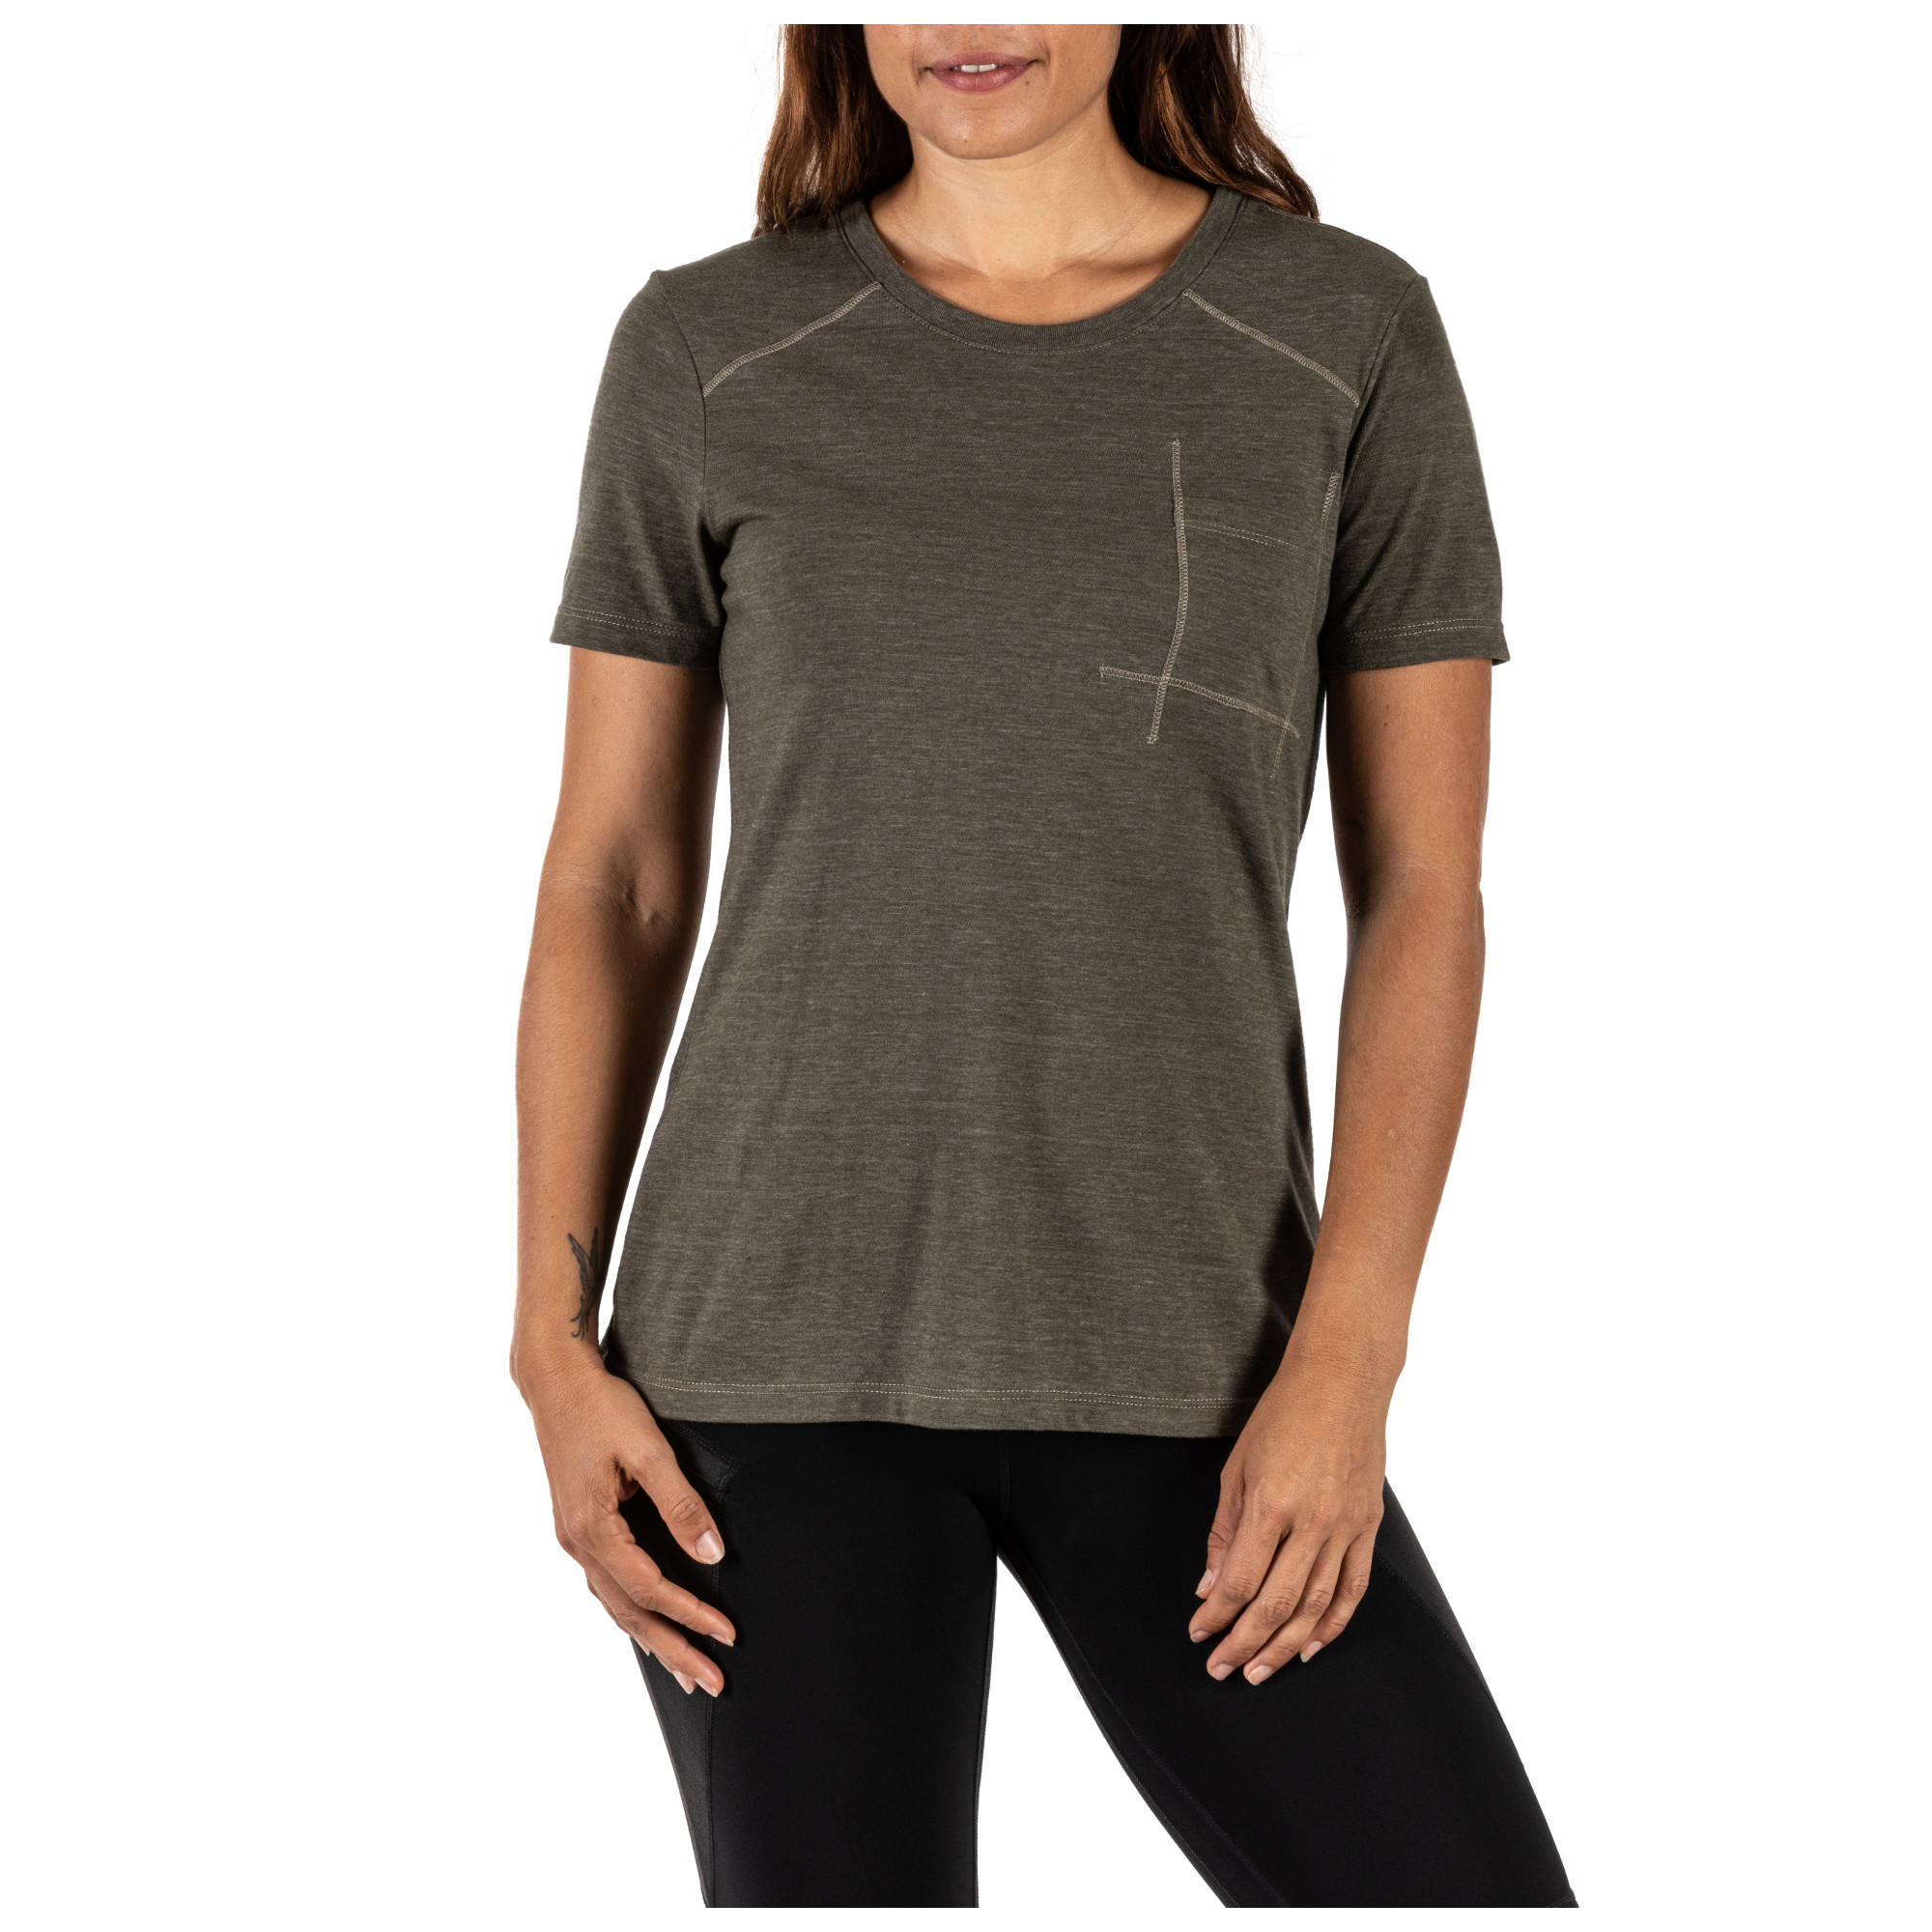 Mechanical Stretch Fabric Wicking Style 31146 5.11 Tactical Womens Willow Henley Training Top